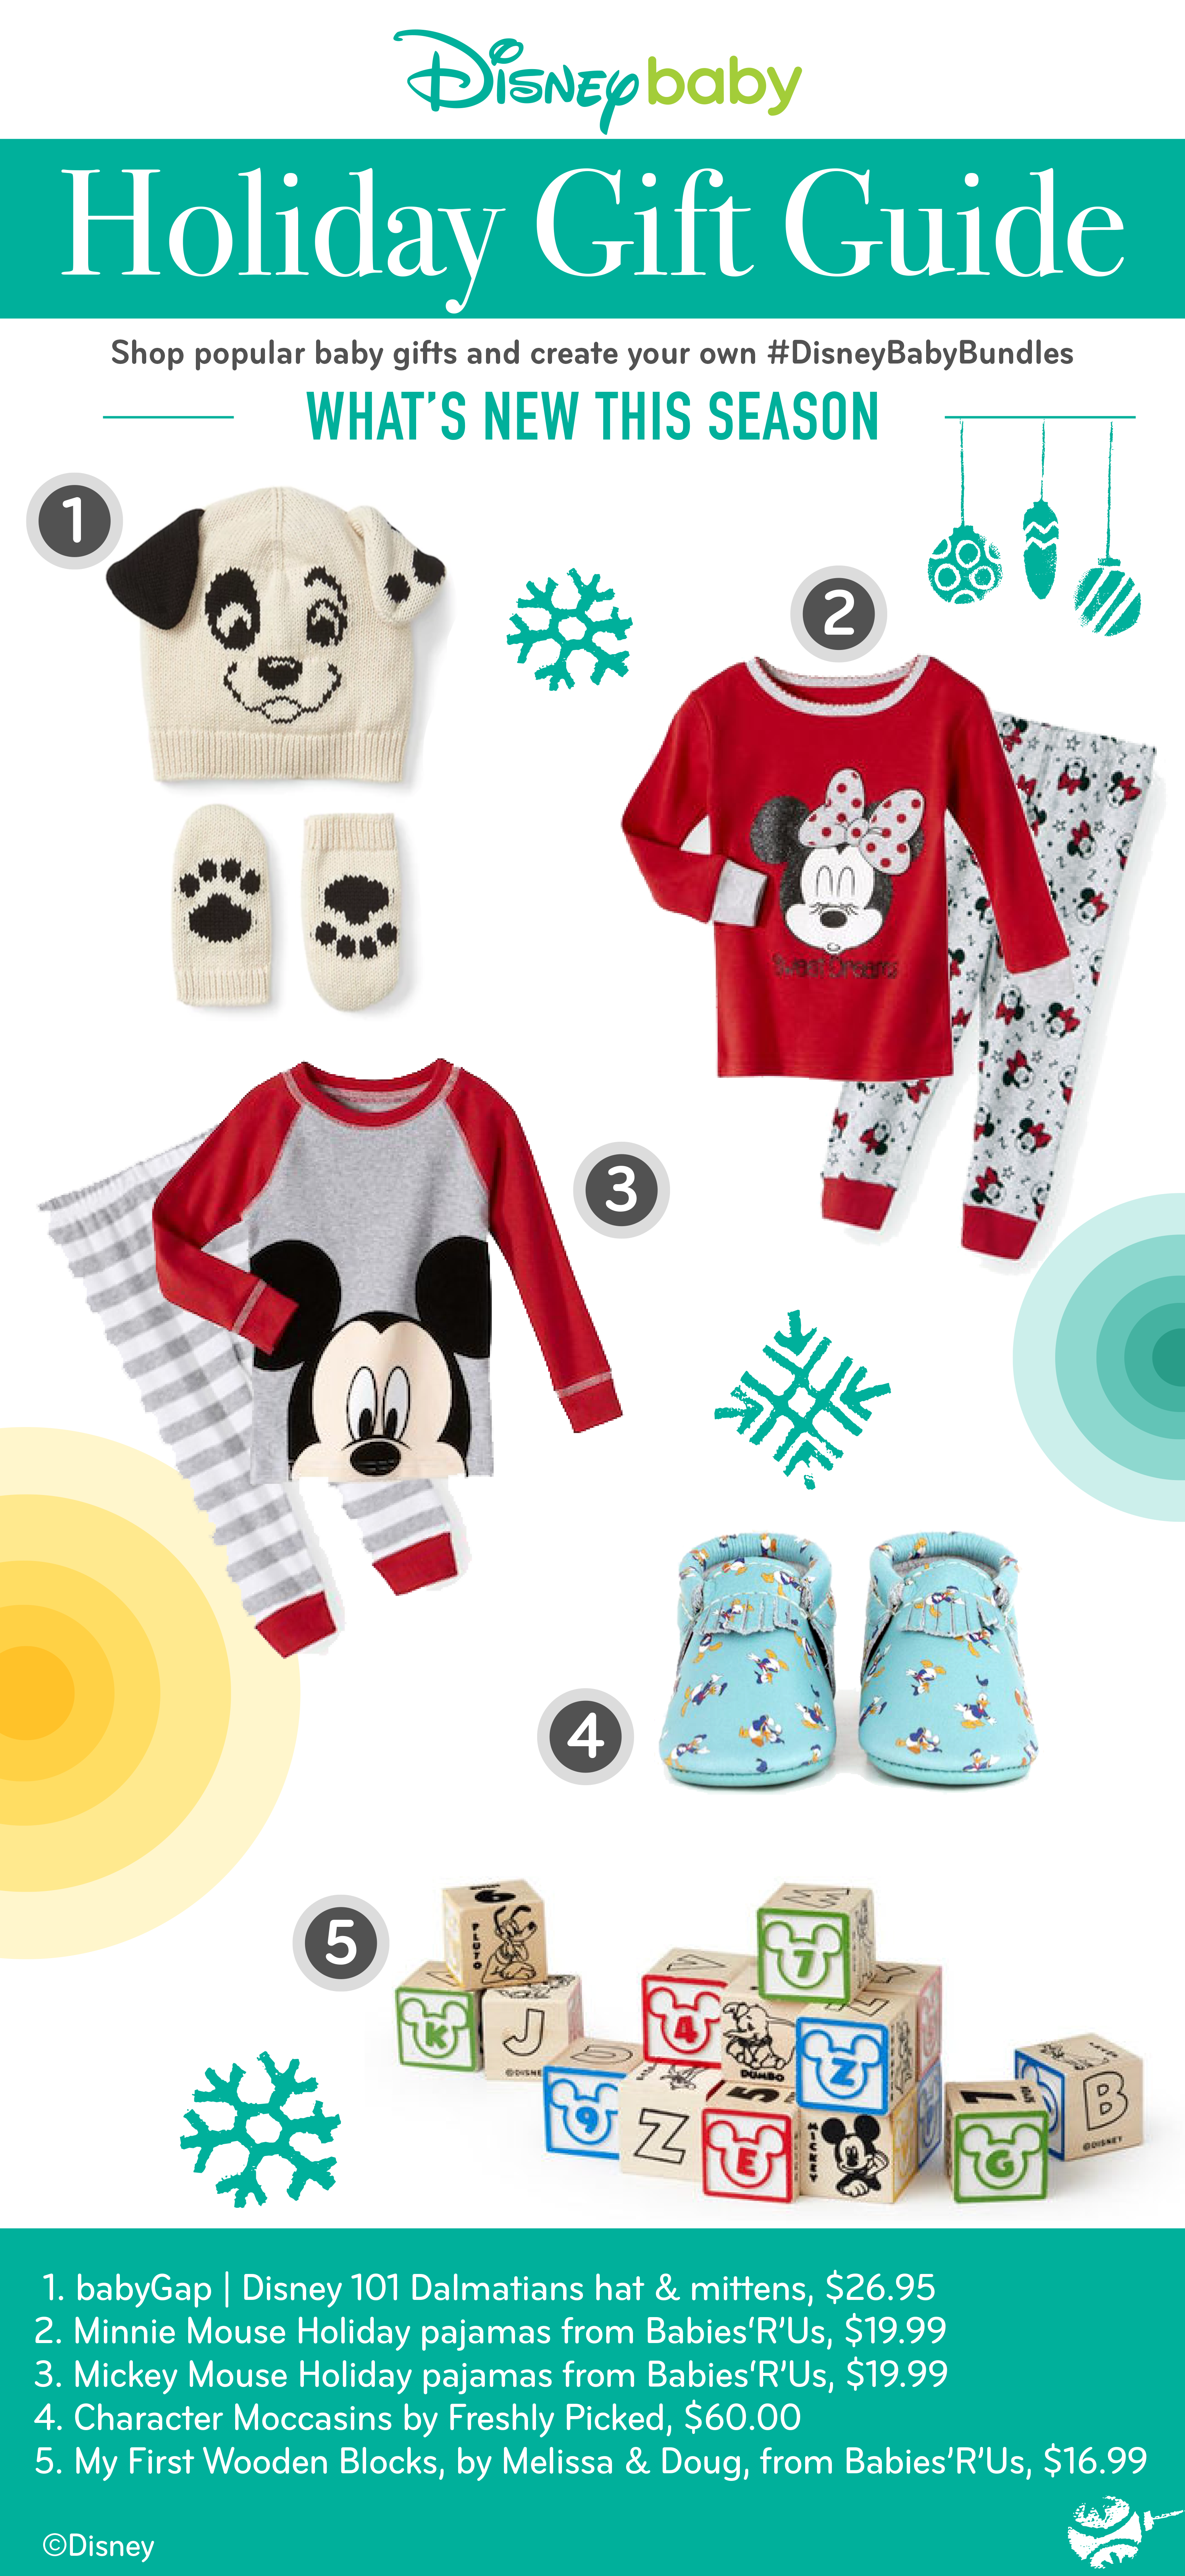 Disney Baby Holiday Gift Guide What s New This Season Shop popular